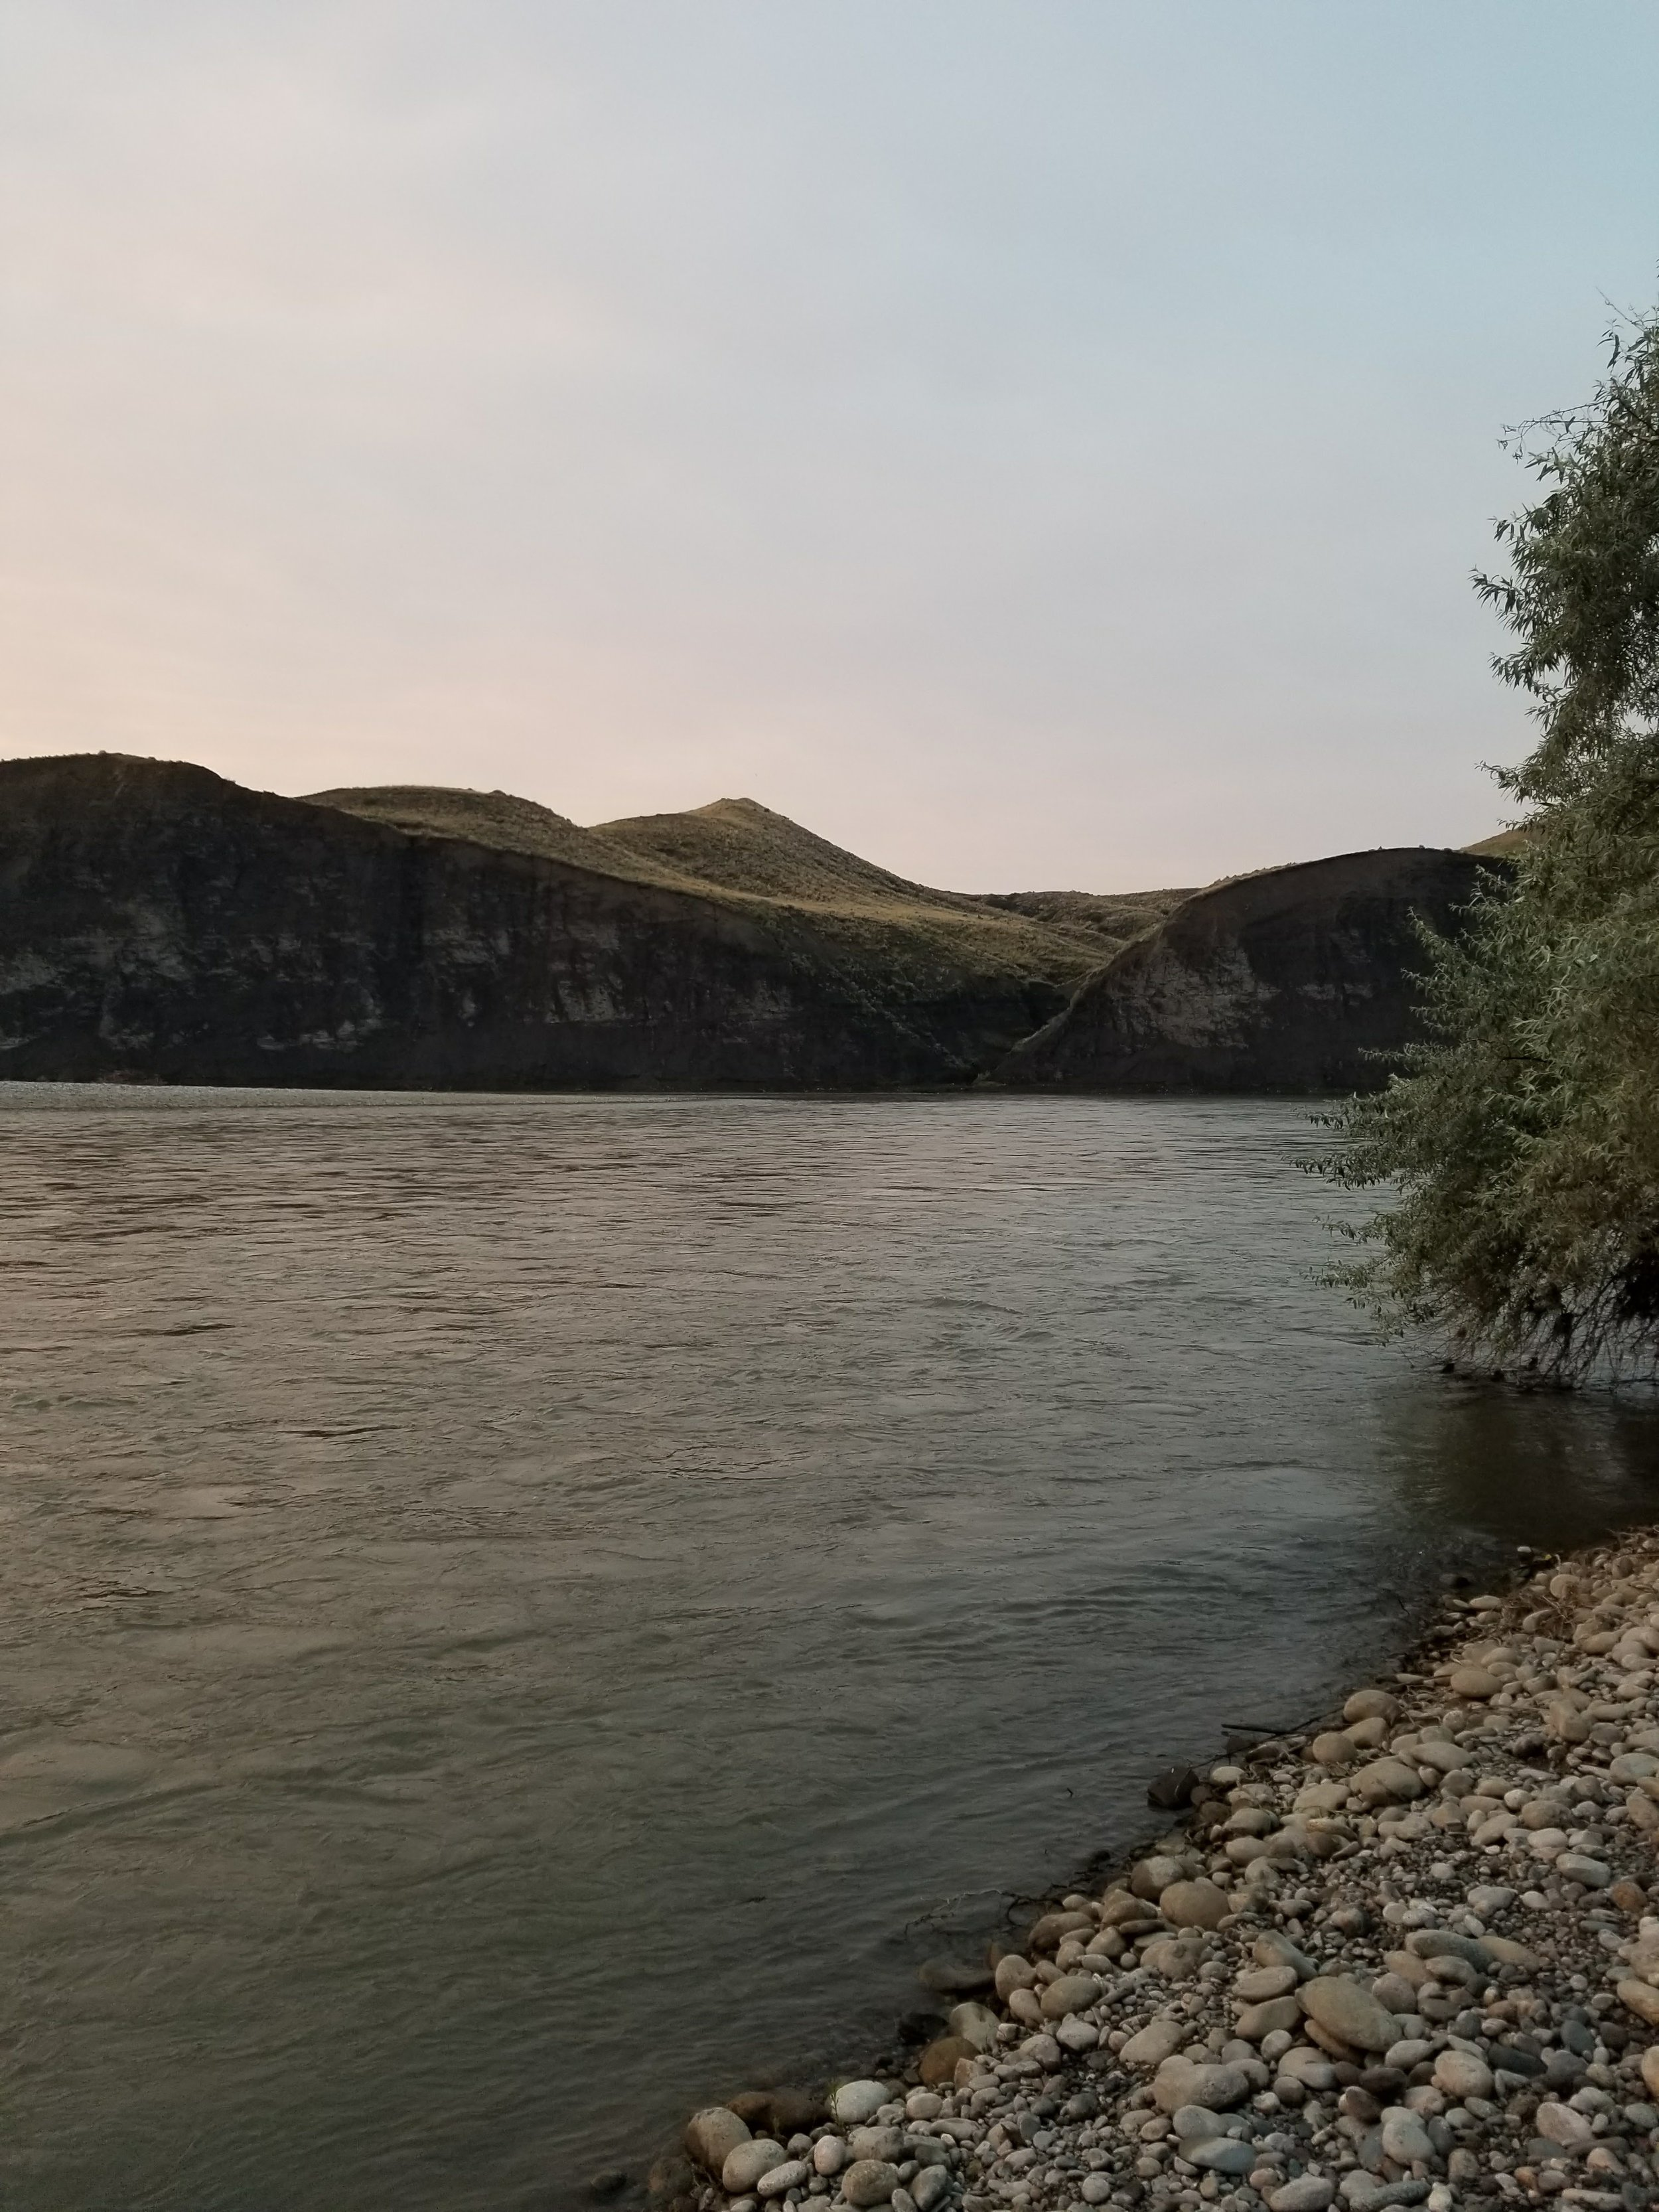 Yellowstone River (Billings, MT)